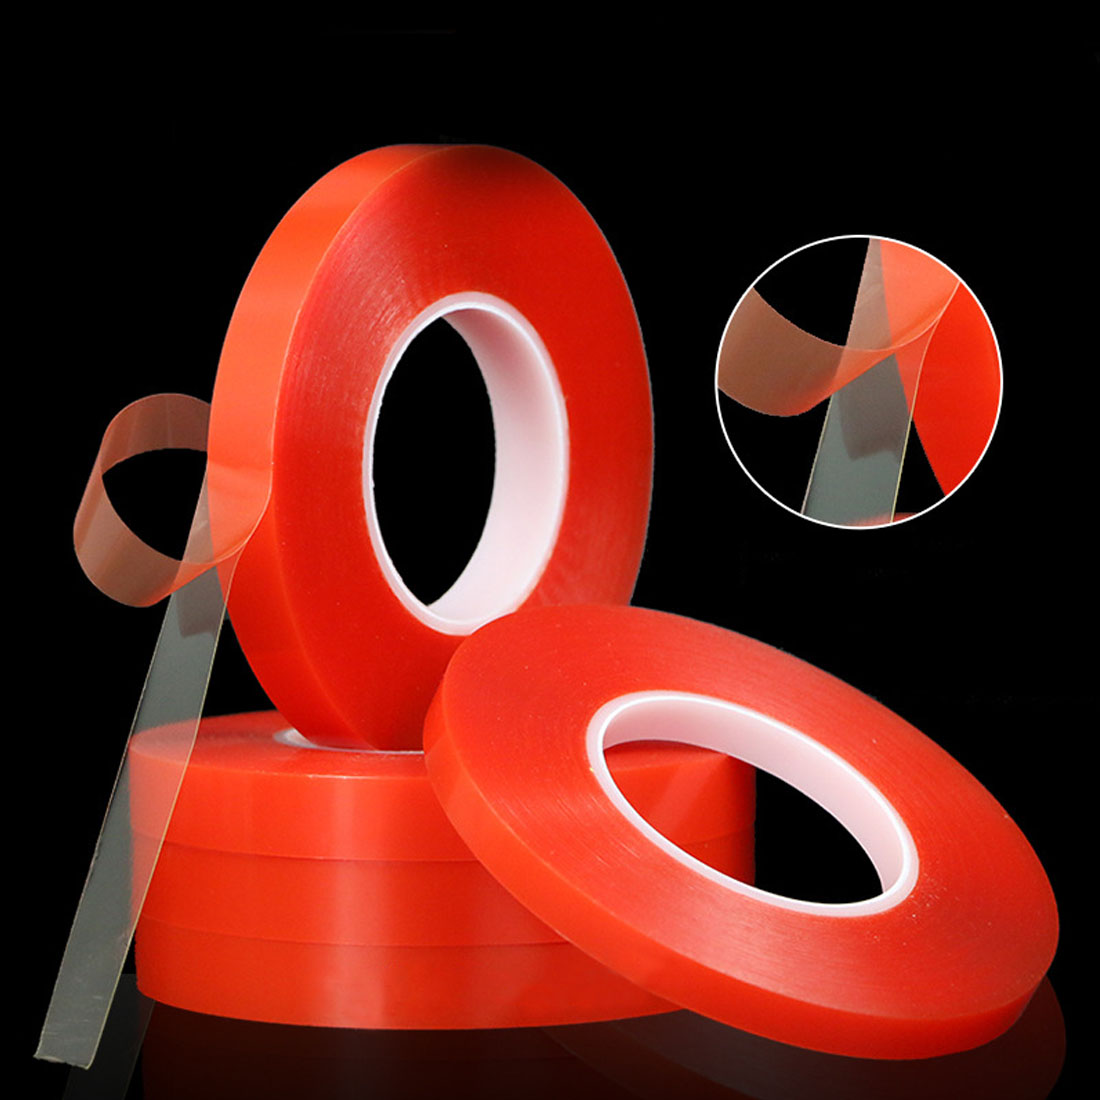 2mm 50M Strong Acrylic Adhesive Red Film Clear Sticker Double Sided Tape Mobile Phone LCD Pannel Display Screen Repair